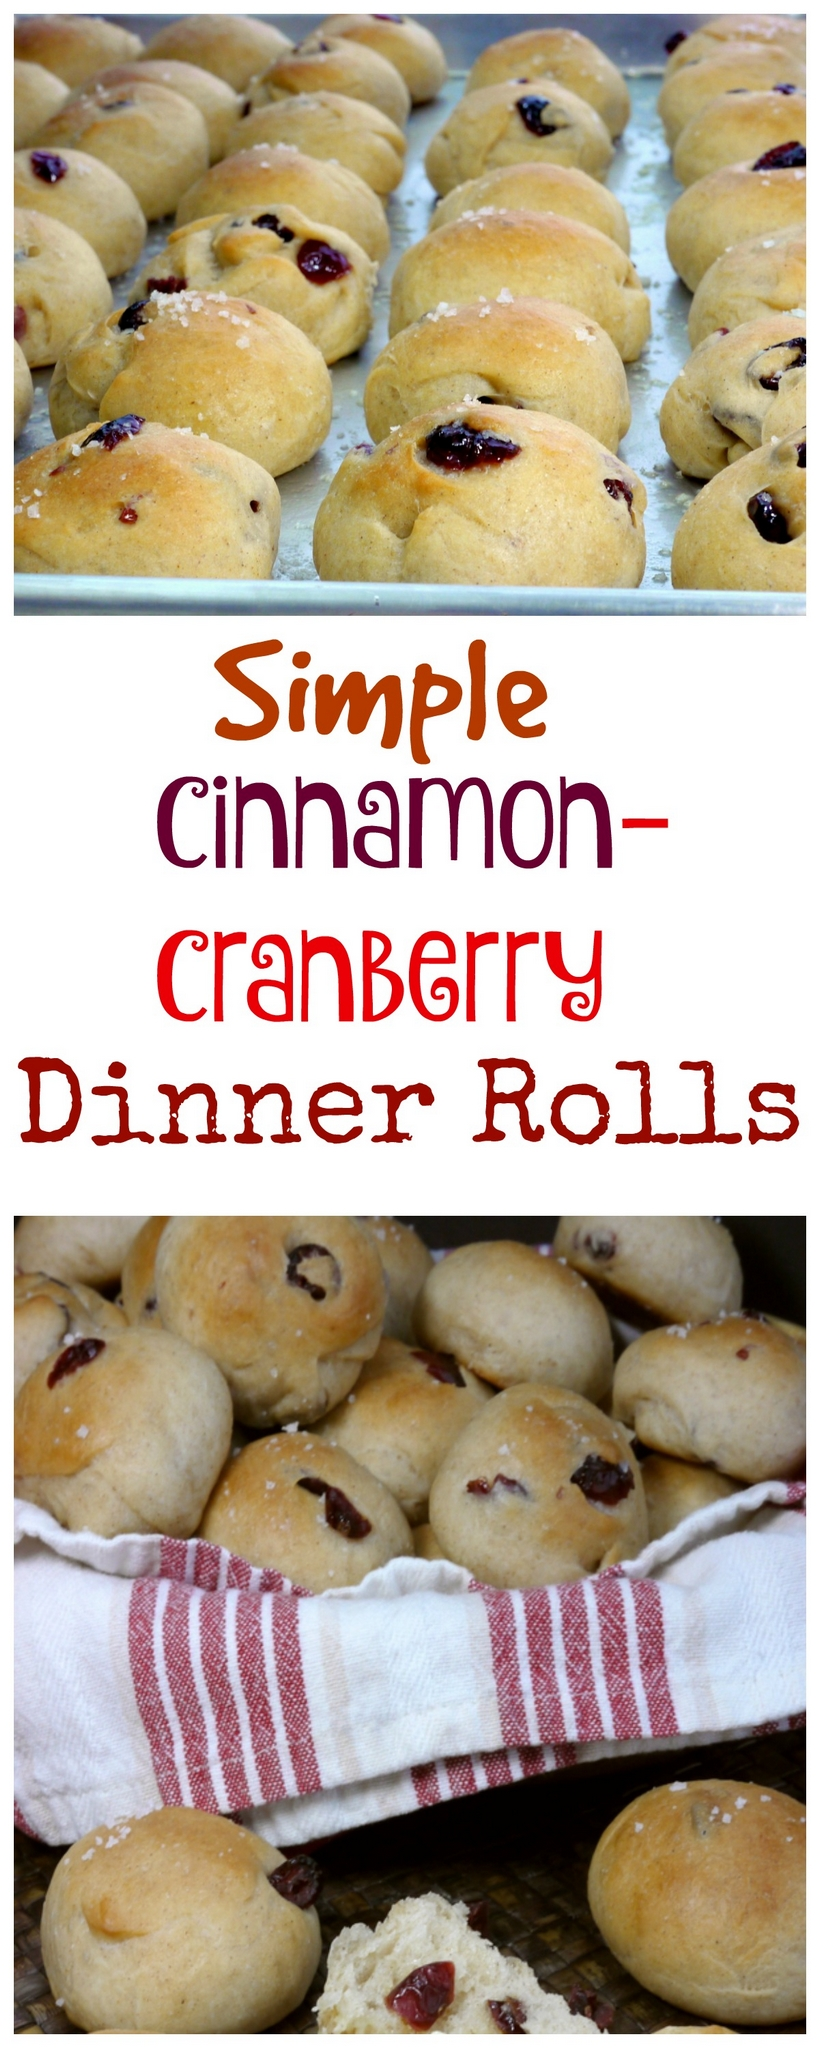 Perfect for all the holidays and every dinner in between, these SIMPLE CINNAMON-CRANBERRY DINNER ROLLS need to be on your menu.